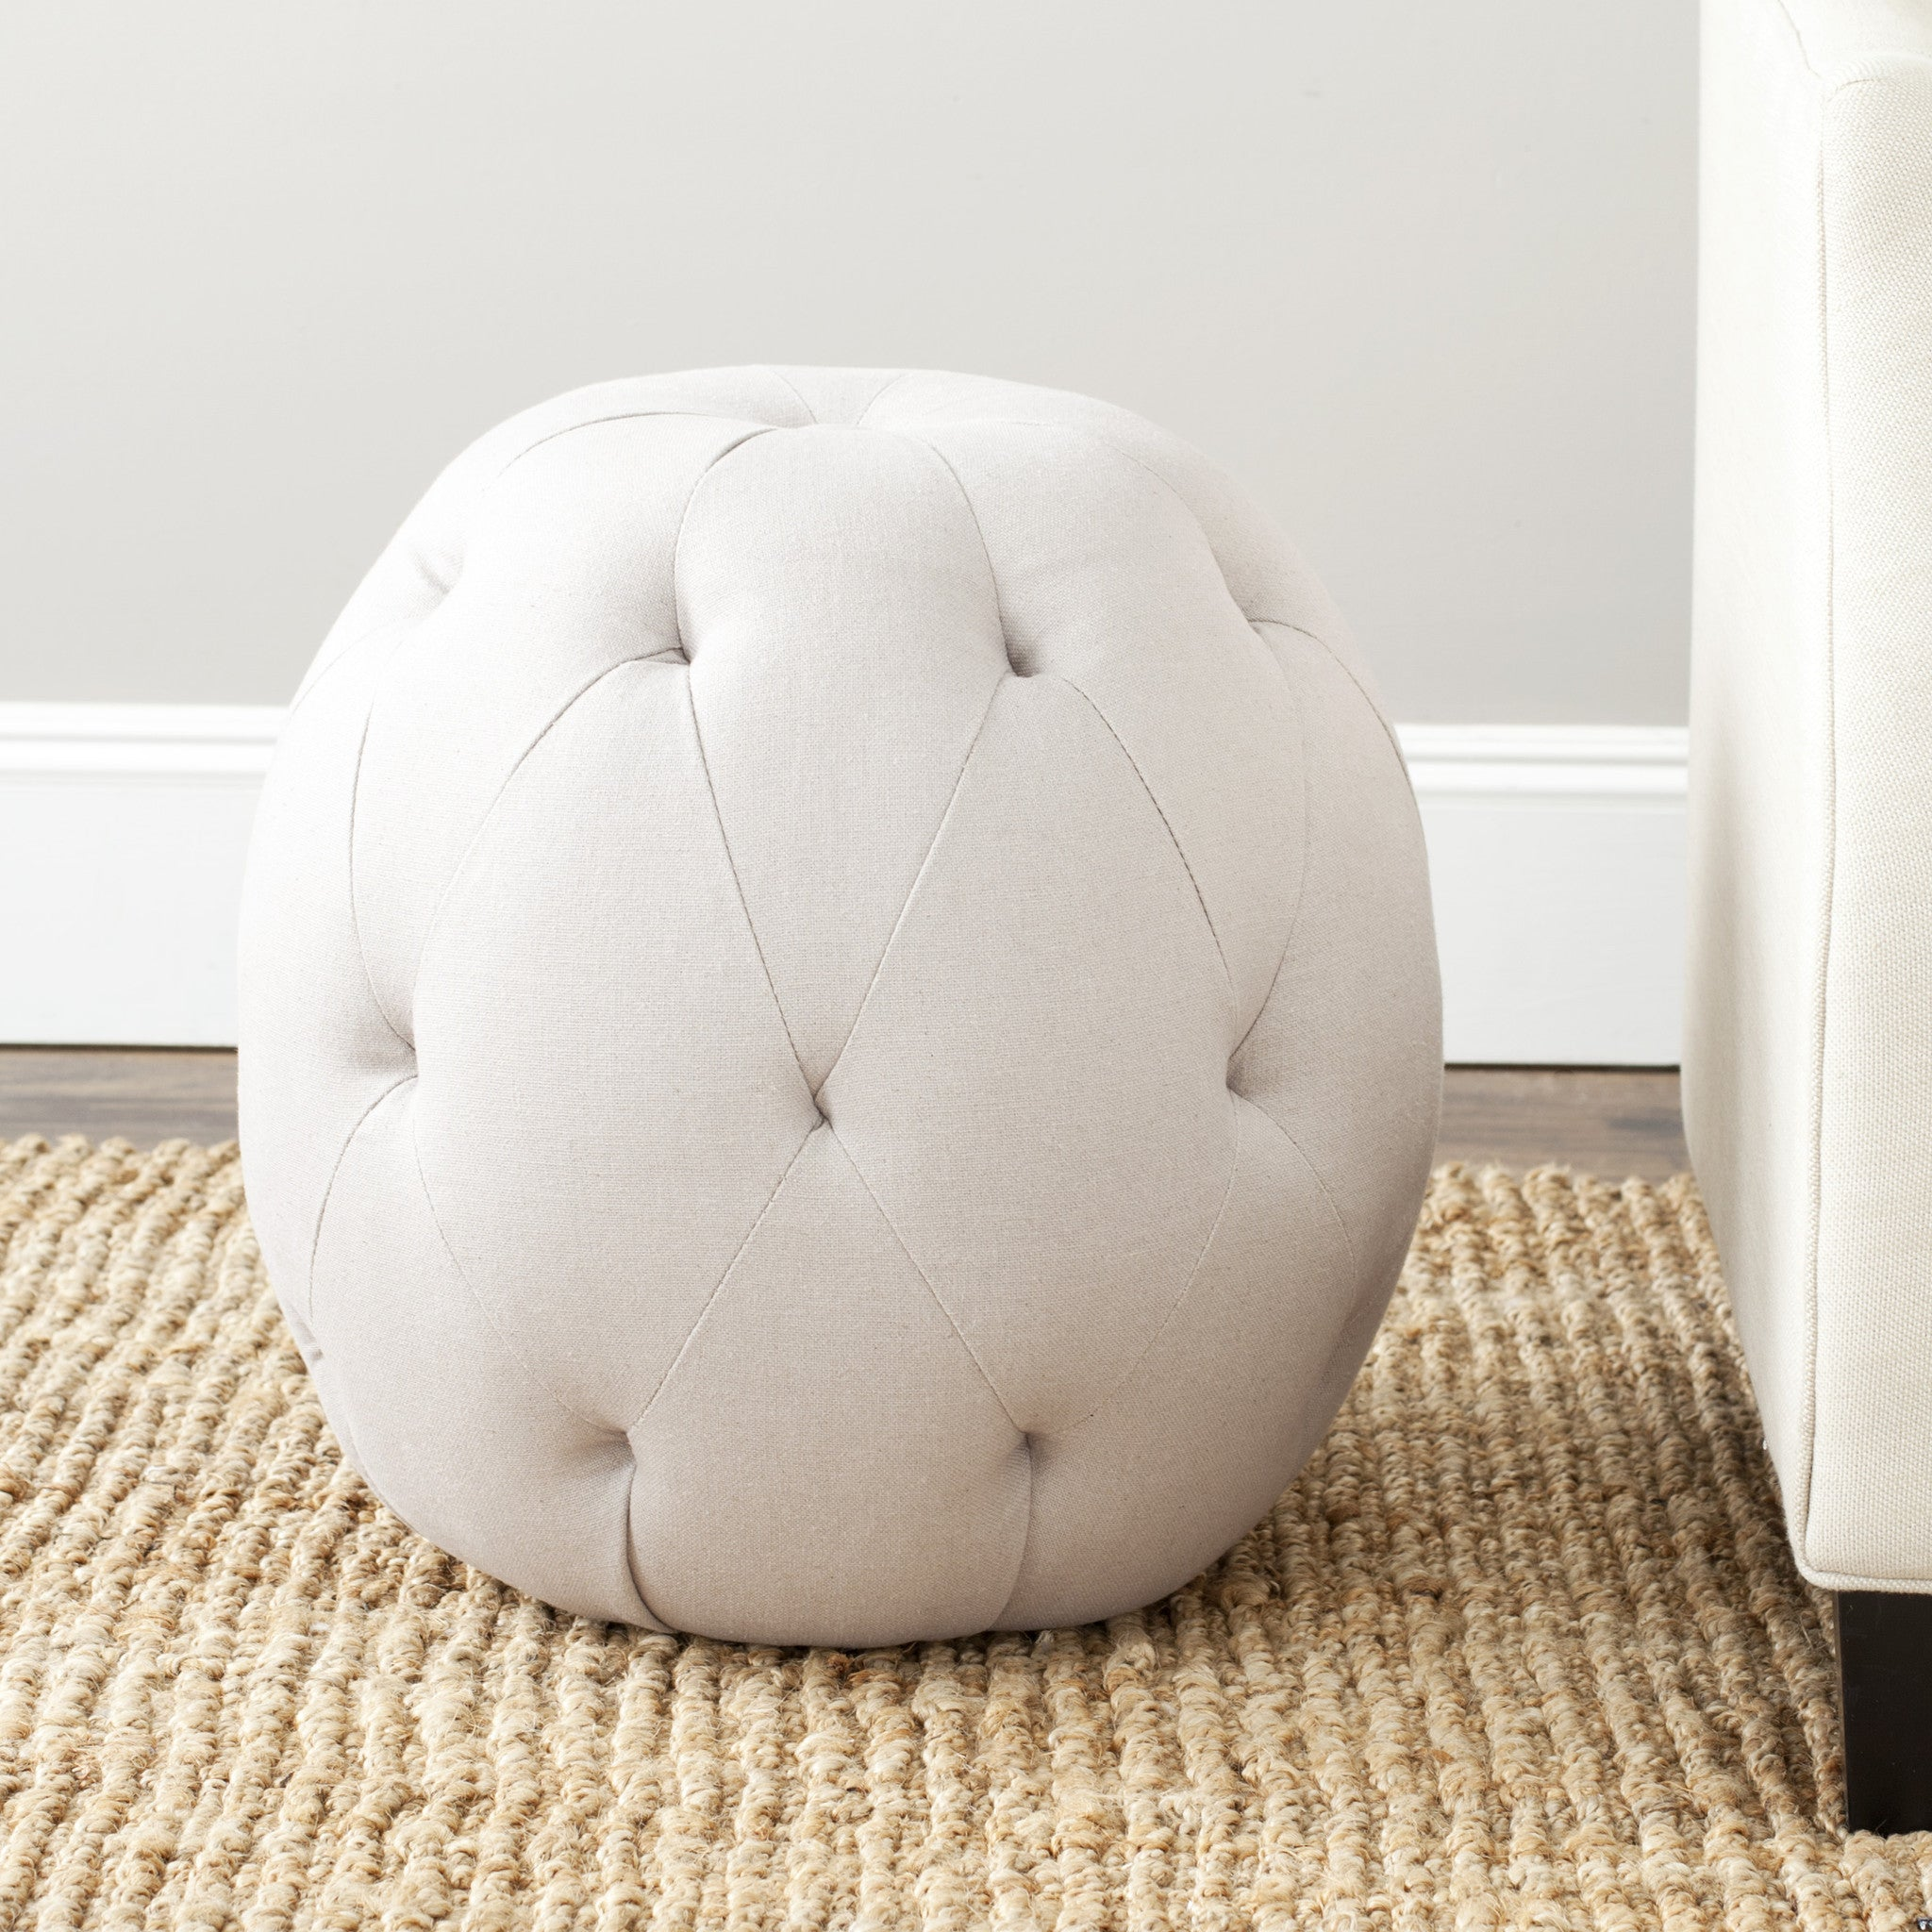 Santiago Ottoman in Taupe design by Safavieh